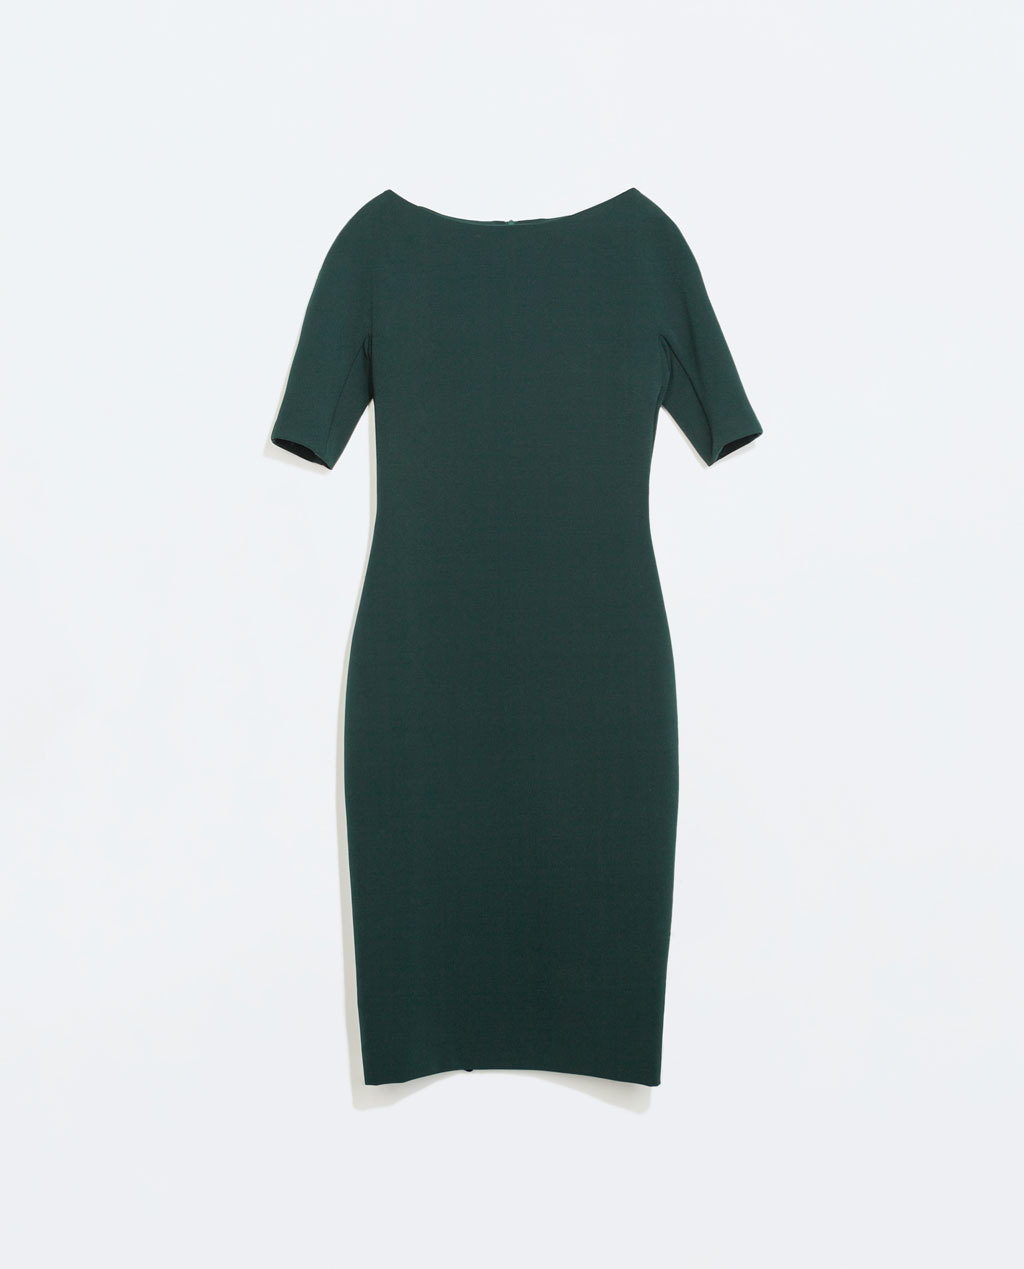 Long Shift Dress - length: below the knee; neckline: slash/boat neckline; fit: tailored/fitted; pattern: plain; style: bodycon; predominant colour: dark green; occasions: work, creative work; sleeve length: half sleeve; sleeve style: standard; pattern type: fabric; texture group: jersey - stretchy/drapey; trends: zesty shades, minimal sleek; season: a/w 2014